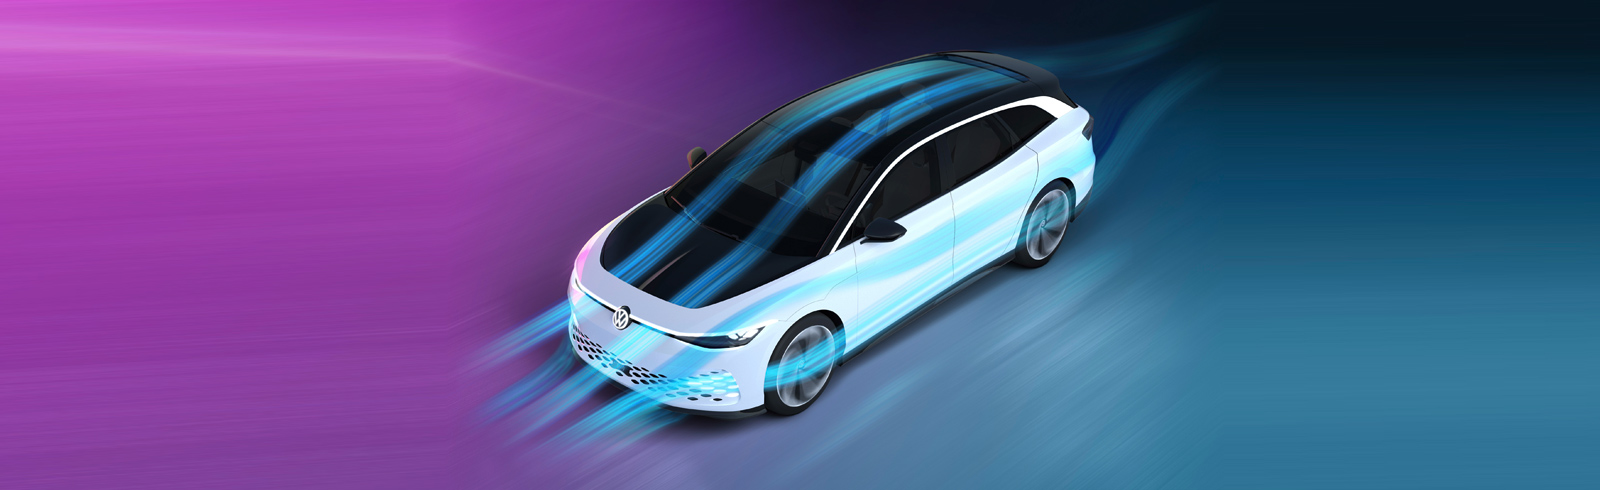 Volkswagen unveils the ID. SPACE VIZZION concept car